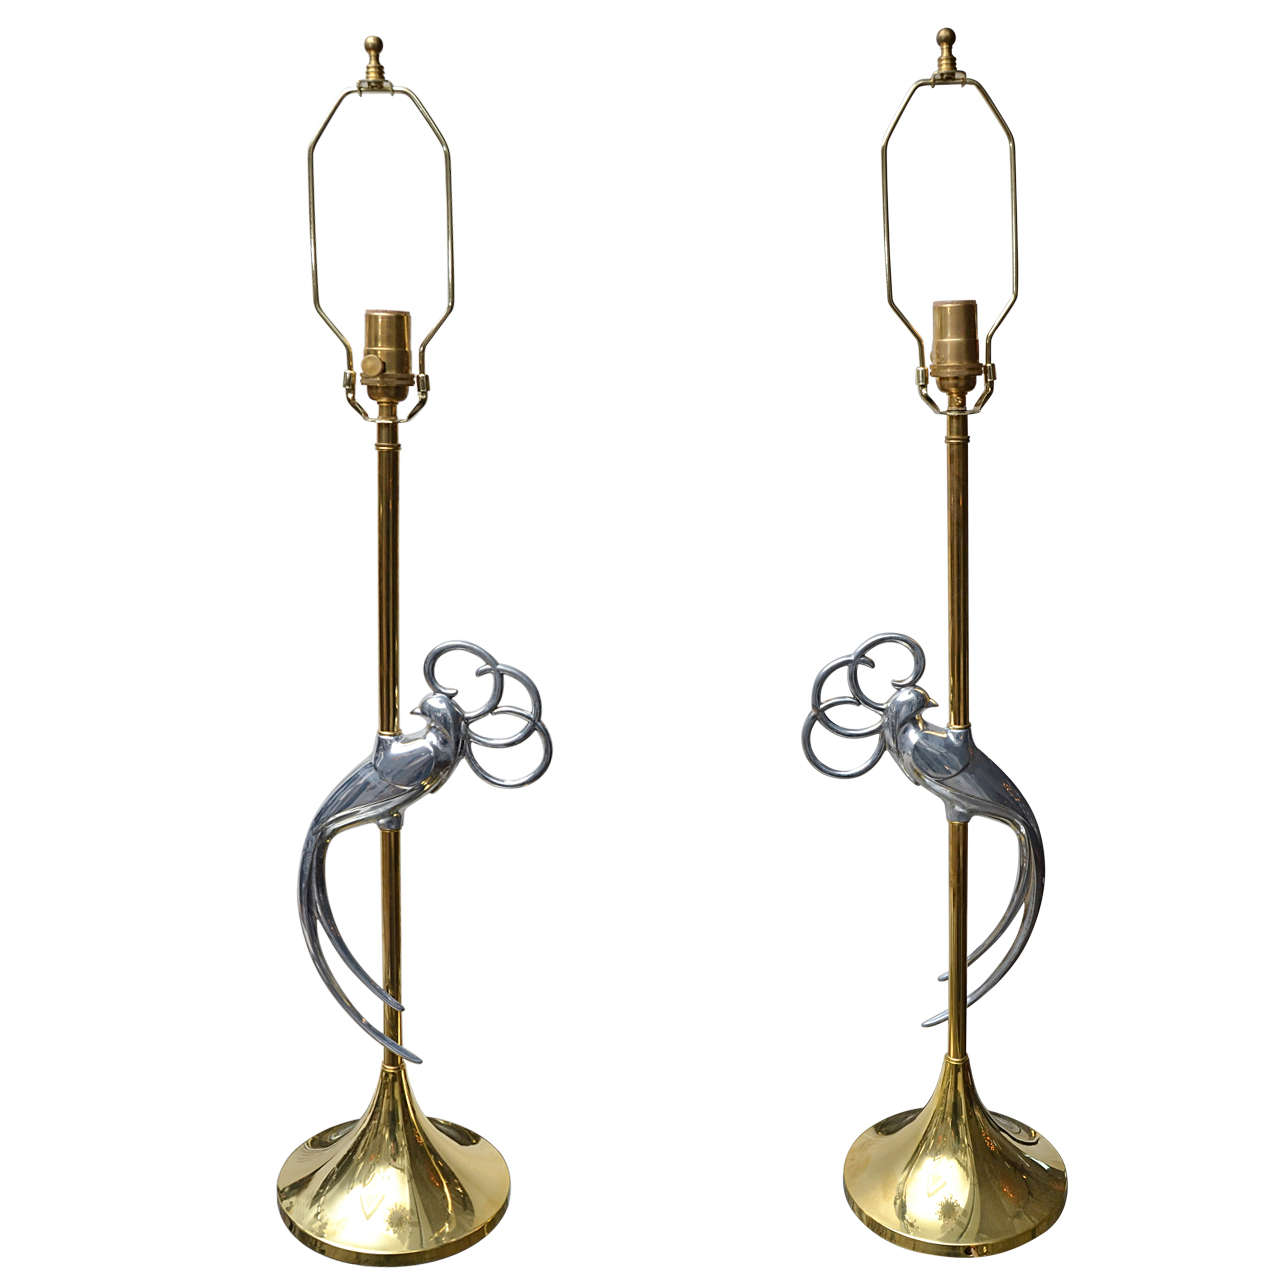 Pair of Brass Table Lamps with Stylized Chrome Exotic Bird at Centre